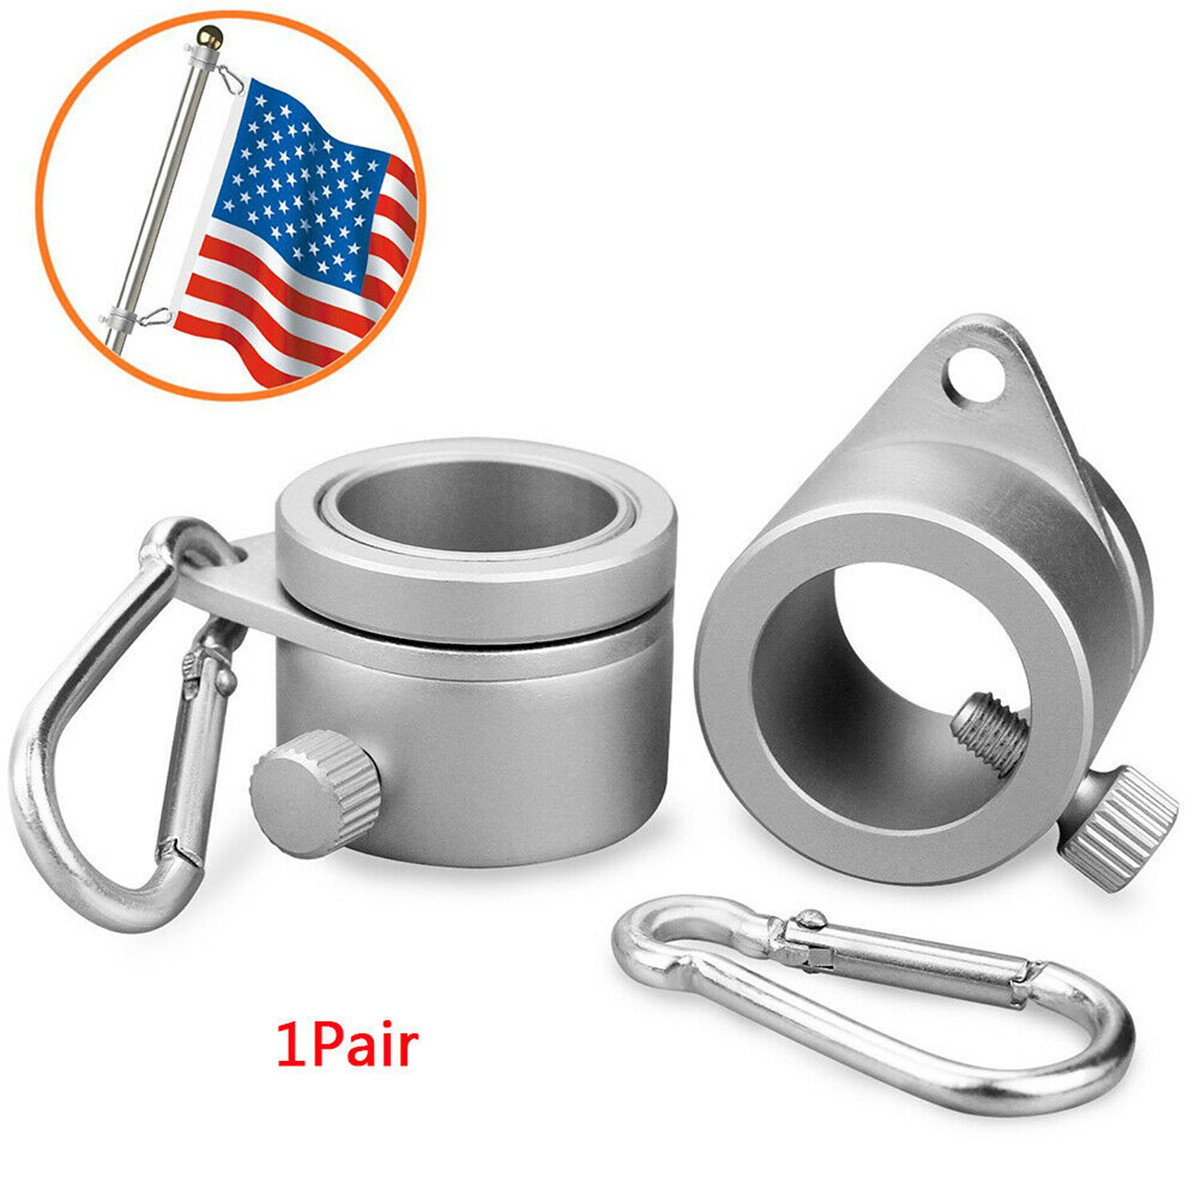 NEW Aluminum Alloy Flag Pole Rings 360 Degree Rotating Flagpole Mounting Rings Kit With Carabiner For 0.75-1.02Inch Flagpole